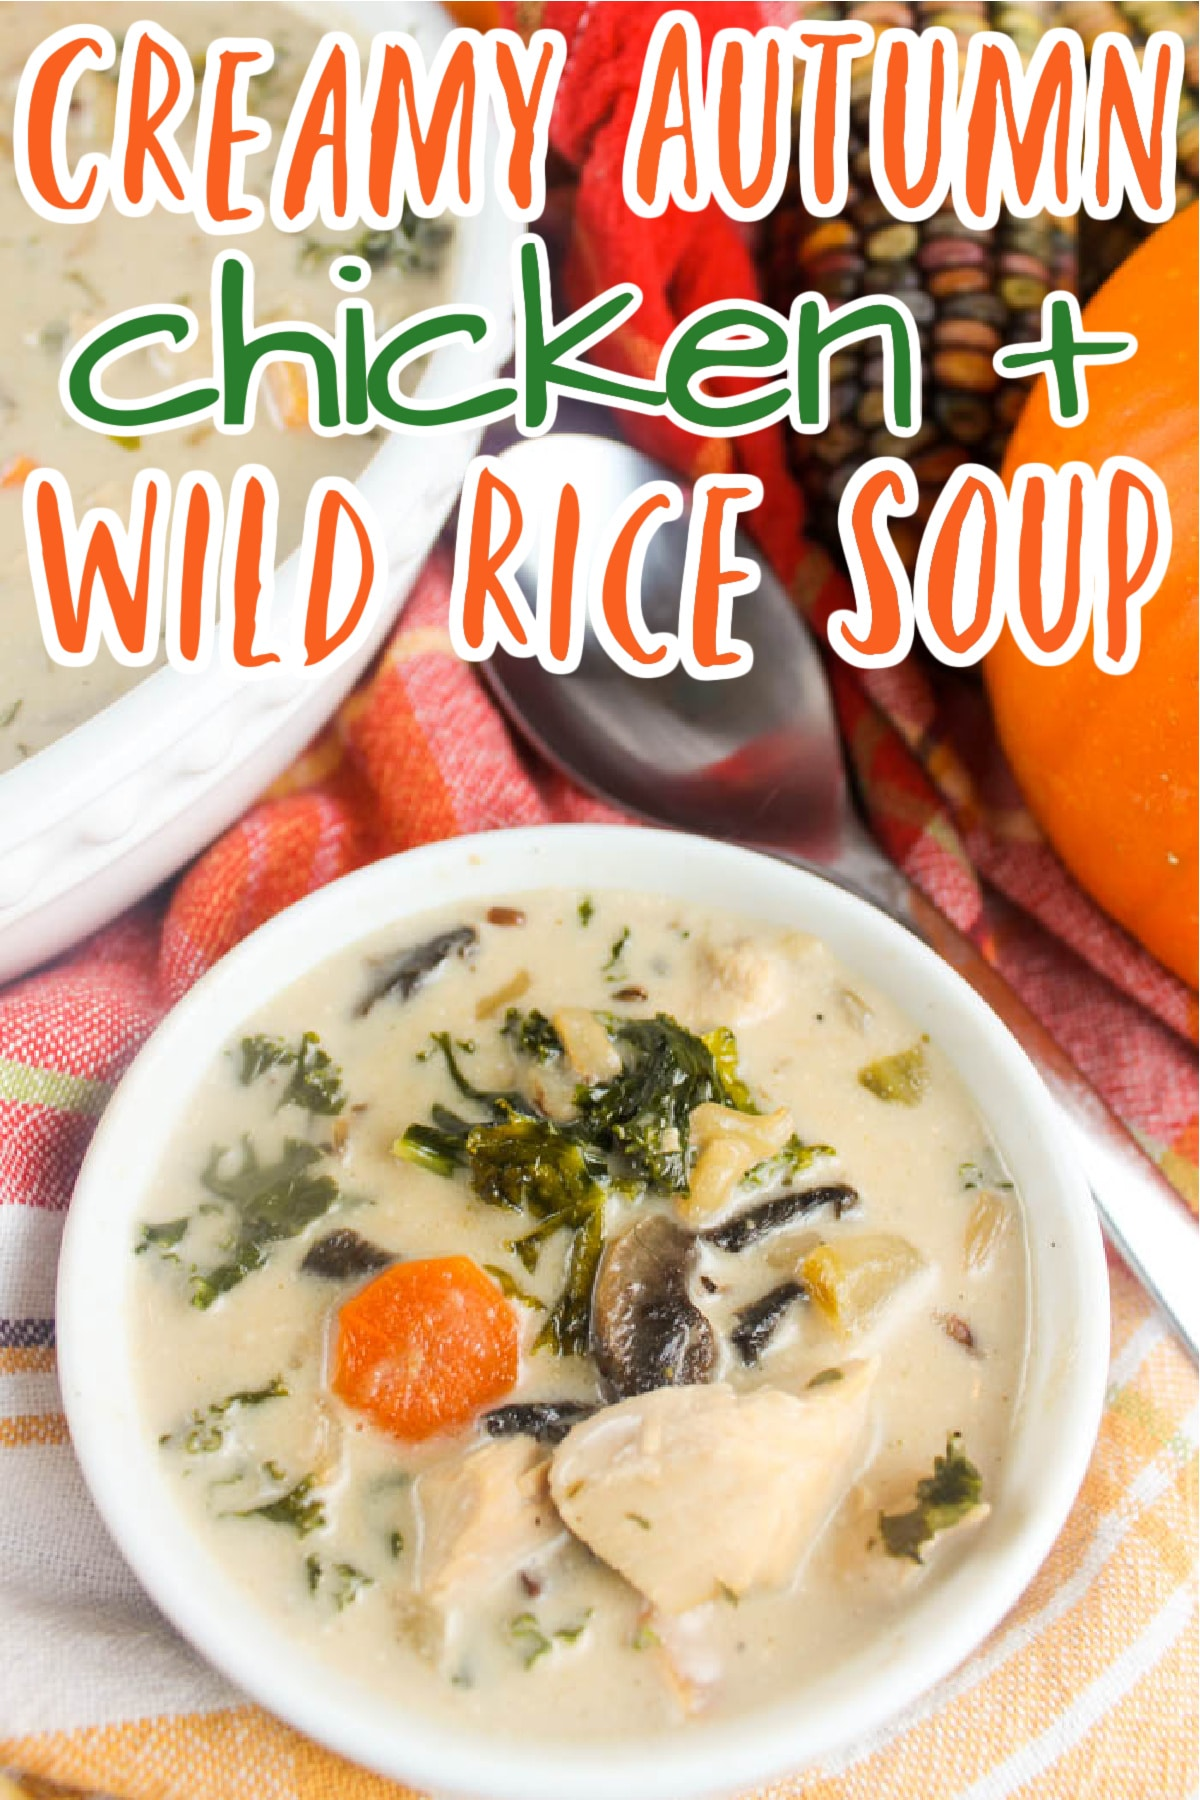 This Creamy Autumn Chicken & Wild Rice Soup is absolutely the perfect step into fall we all need! It starts with LOTS of veggies, including sweet potato, kale and mushrooms, and finishes with chicken broth and cream - for a perfectly balanced comforting bowl of yum!  via @foodhussy